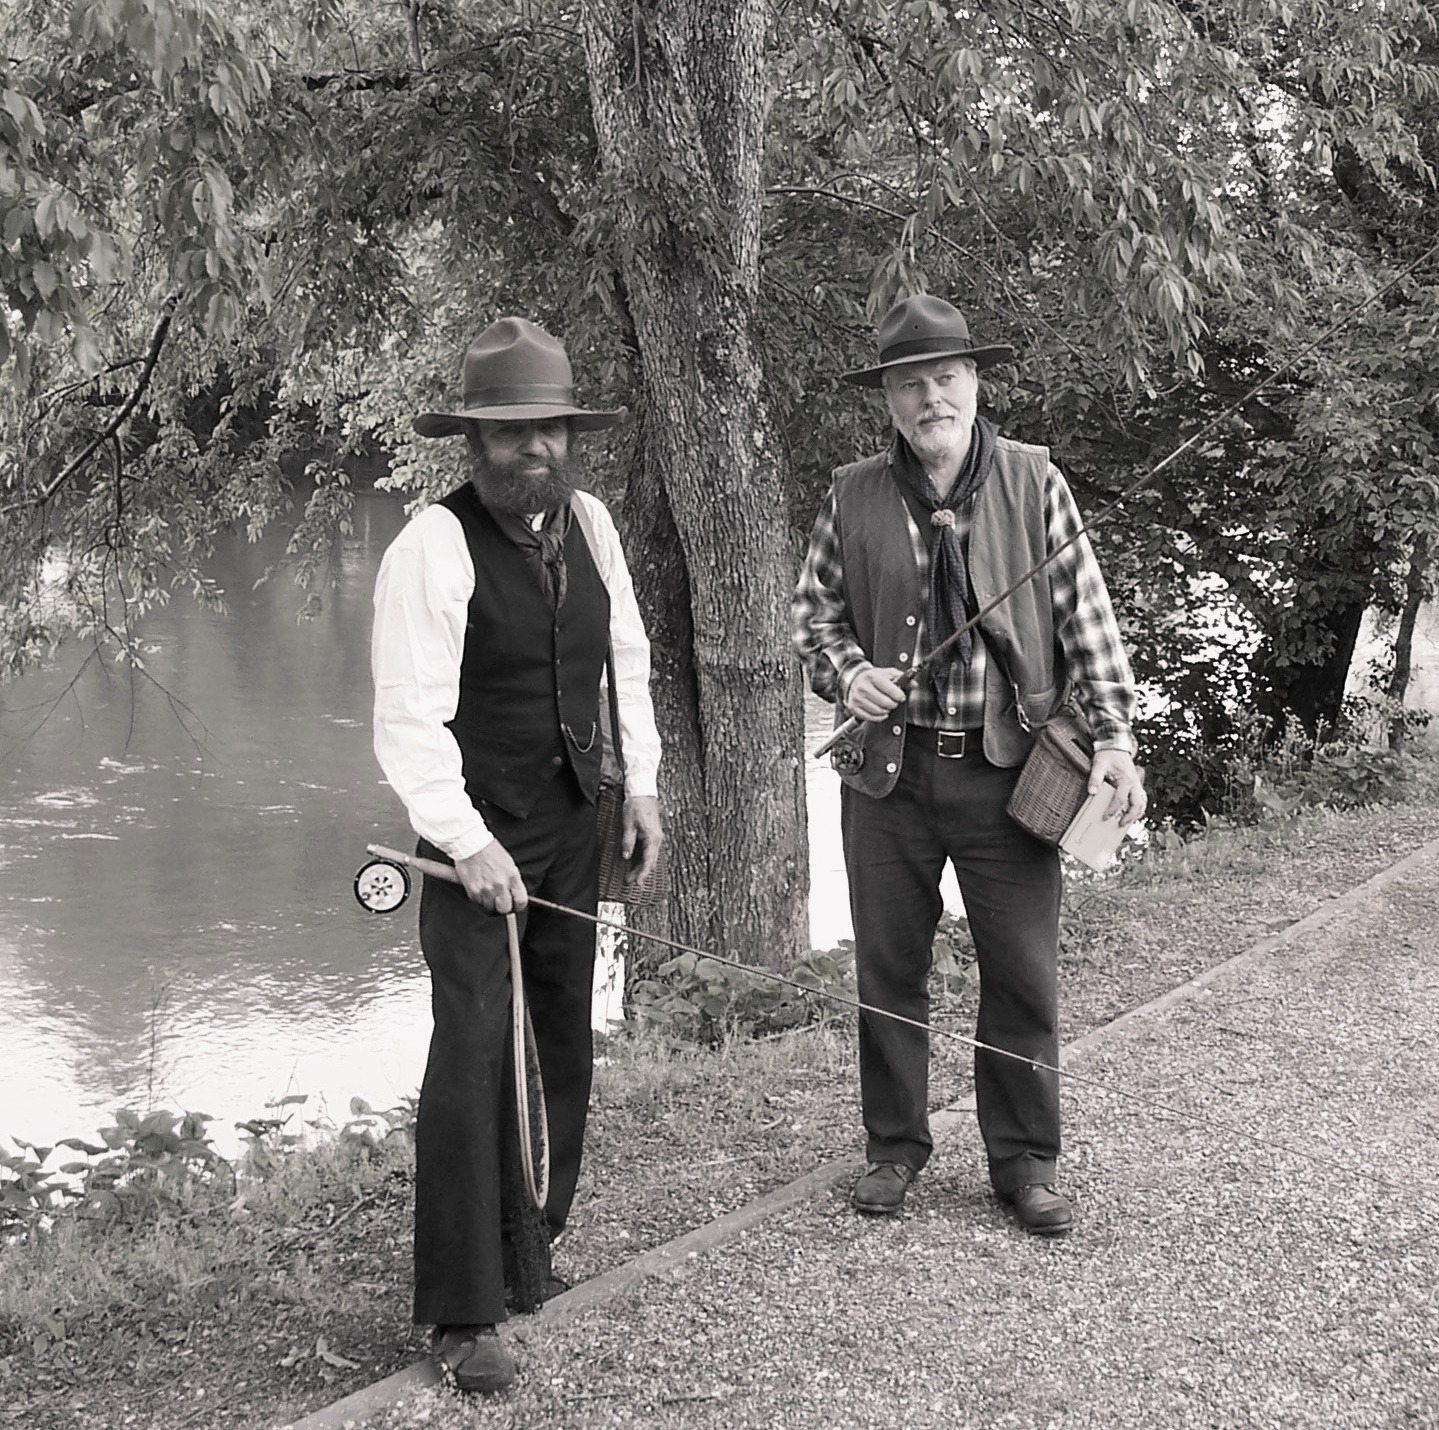 Steve Watts (left) and Wayne Williams, looking like men should look doing what men should do at Kephart Days in 2011.